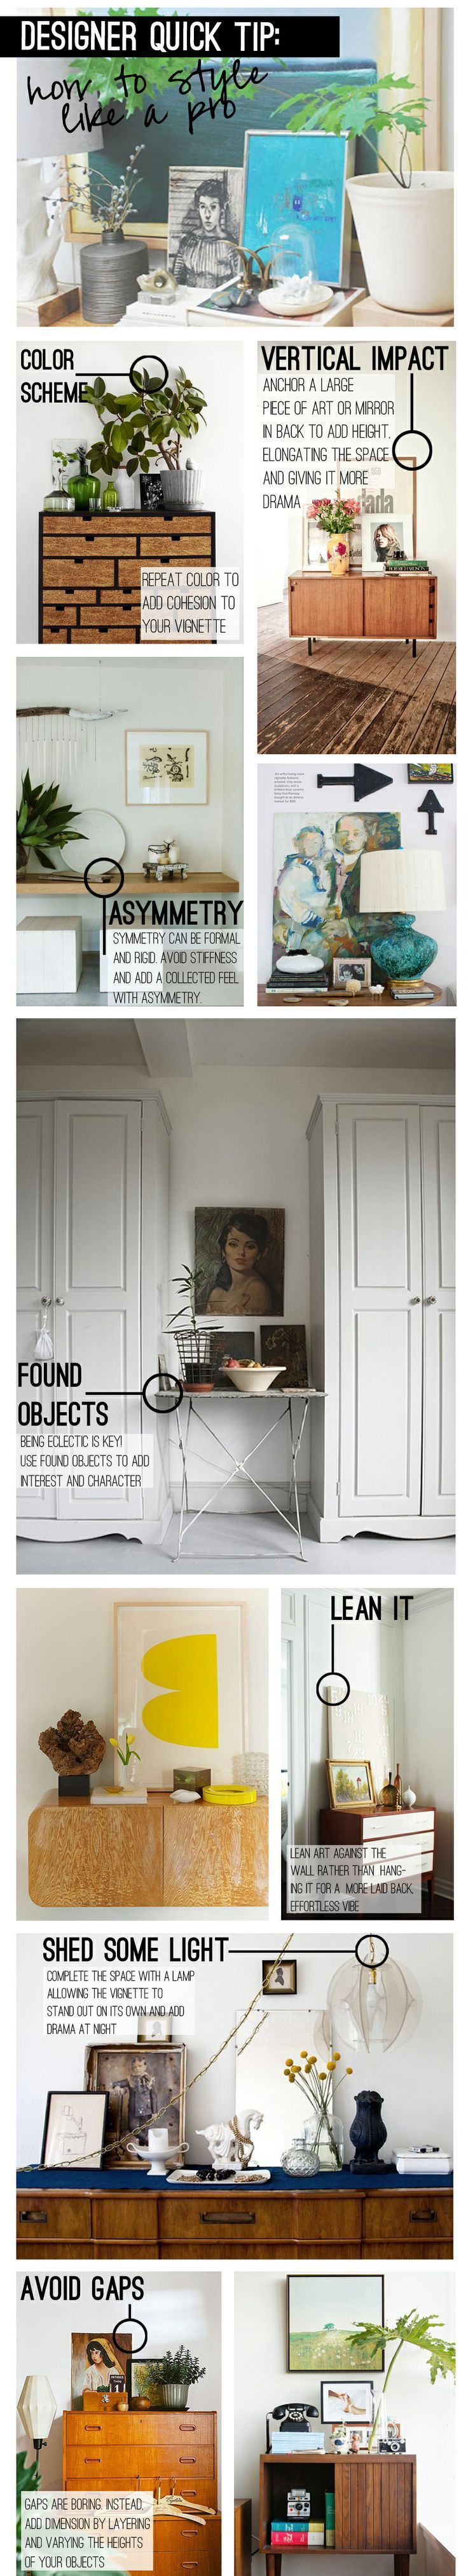 best 10 interior design boards ideas on pinterest mood board designer quick tip amber interiors